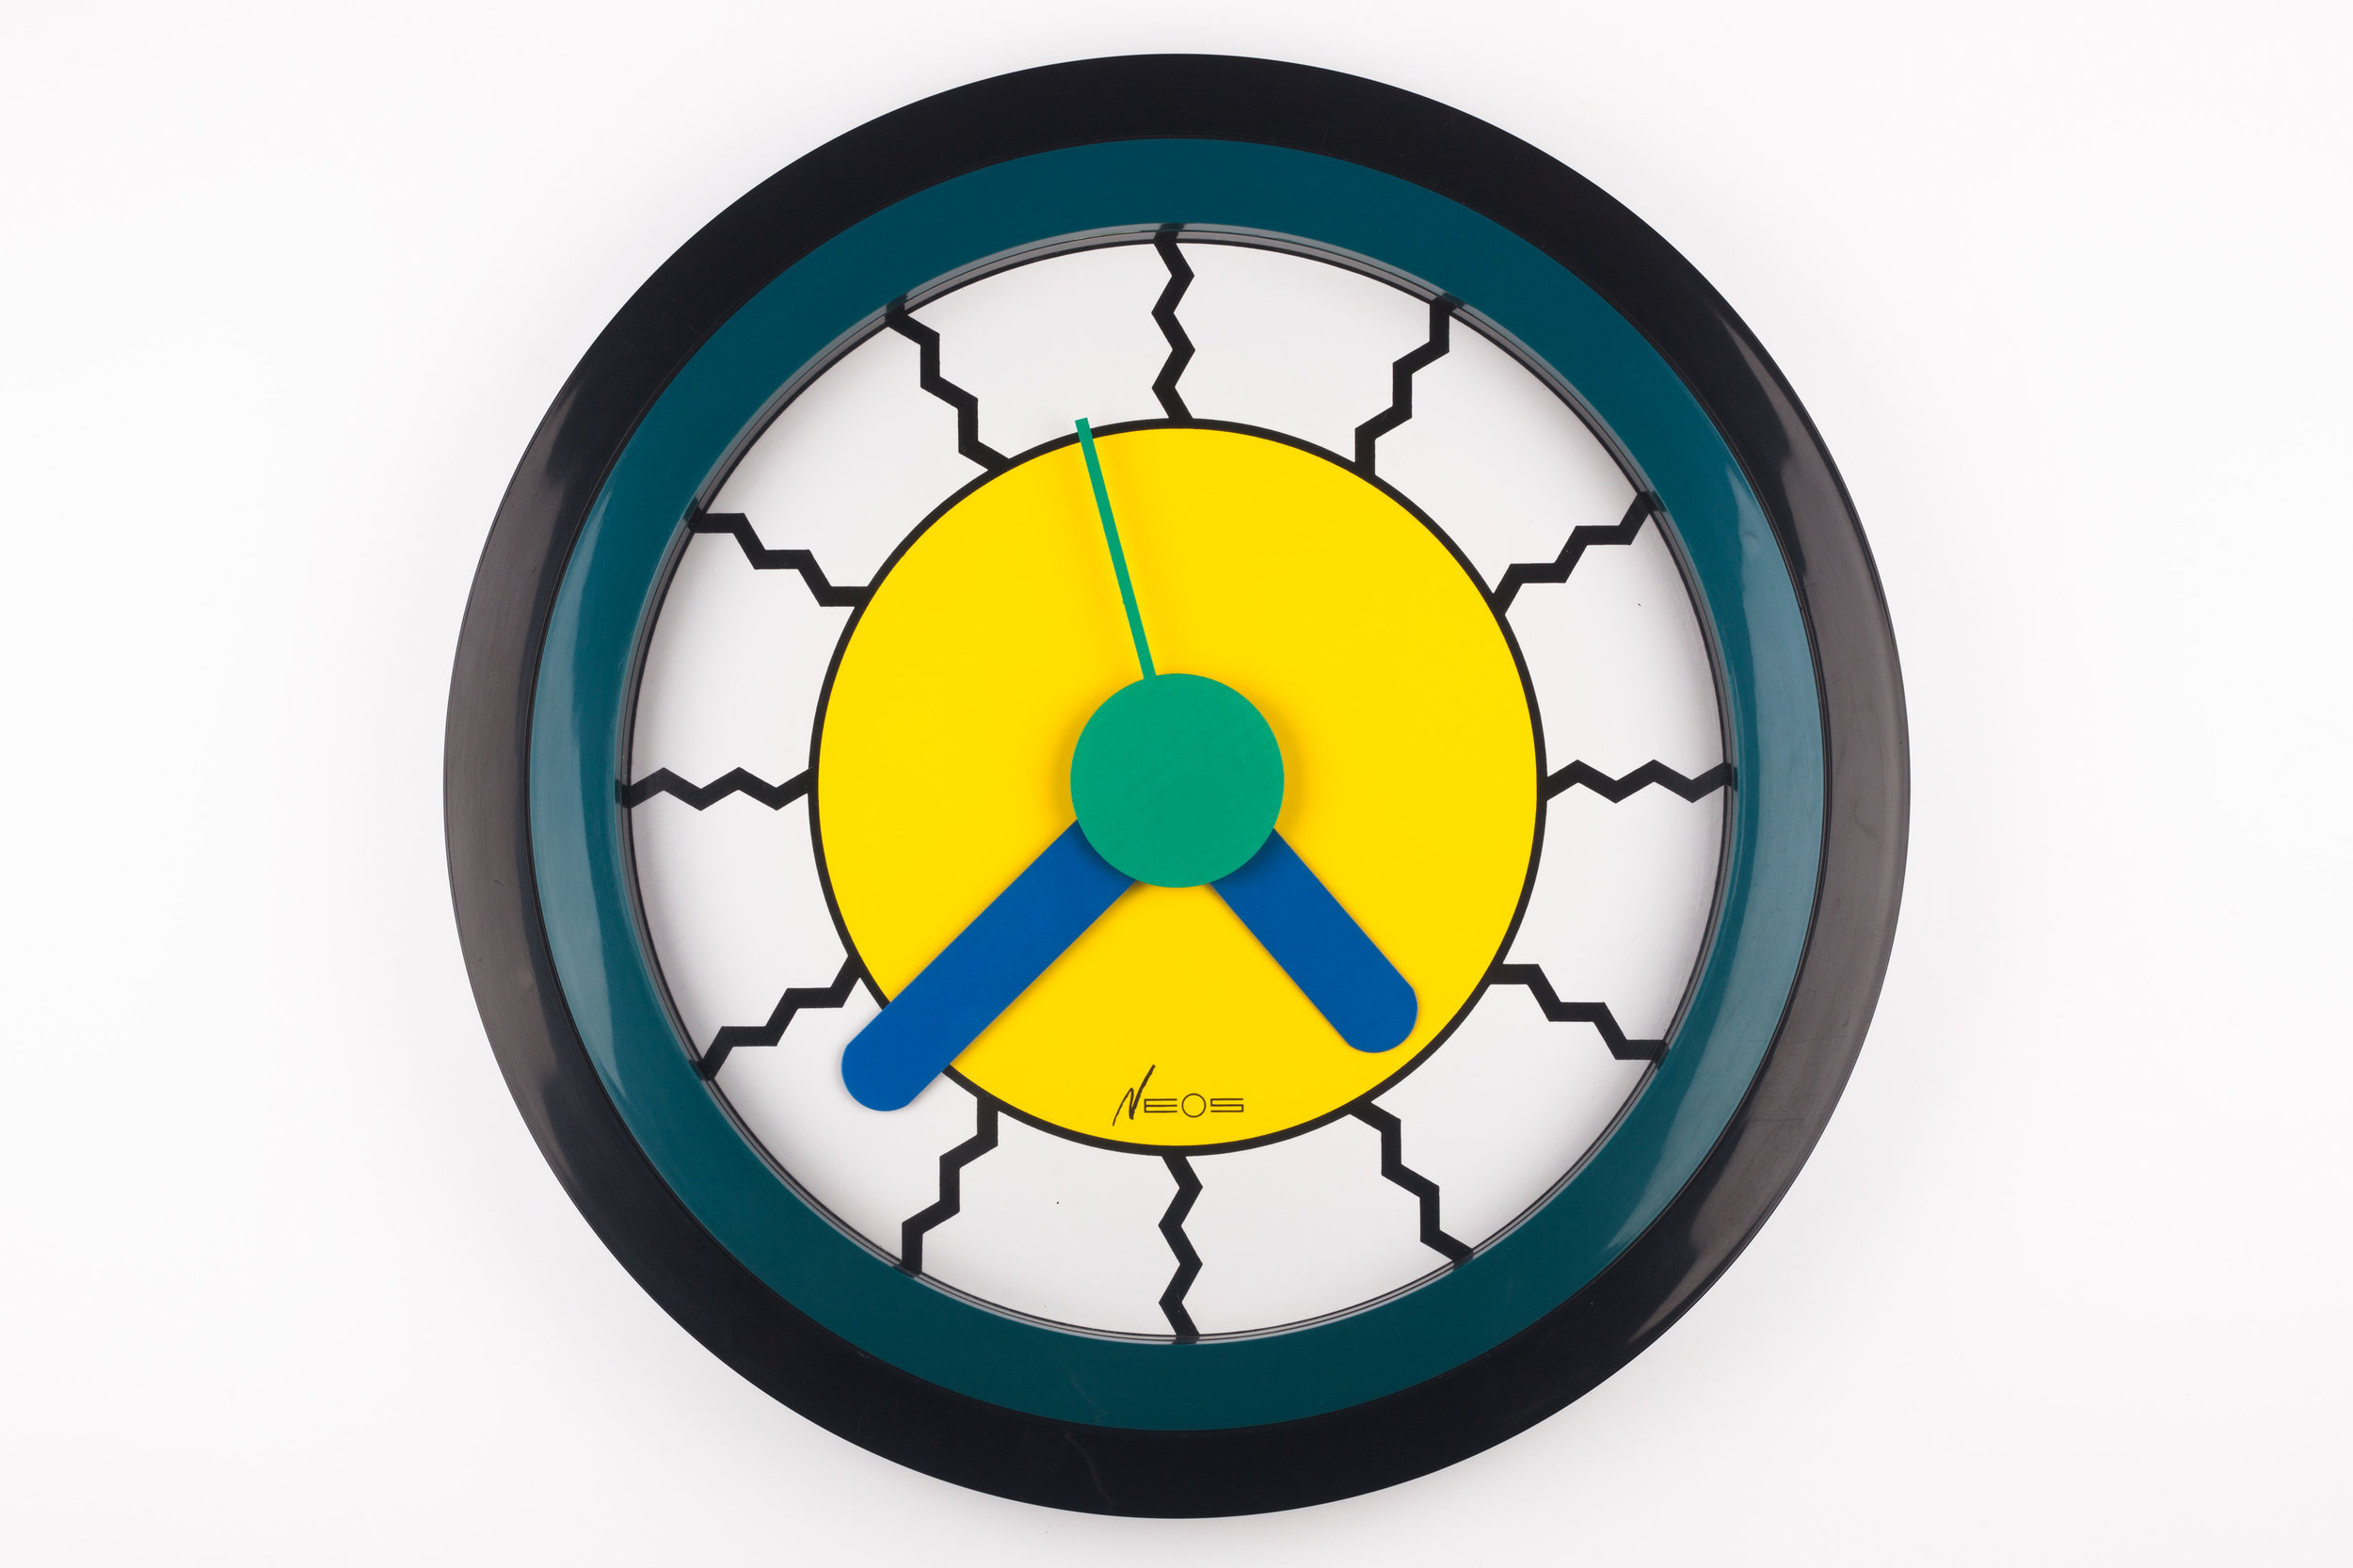 POSTMODERN WALL CLOCK YELLOW, BLUE, DU PASQUIER AND SOWDEN X NEOS, ITALY, 1980S